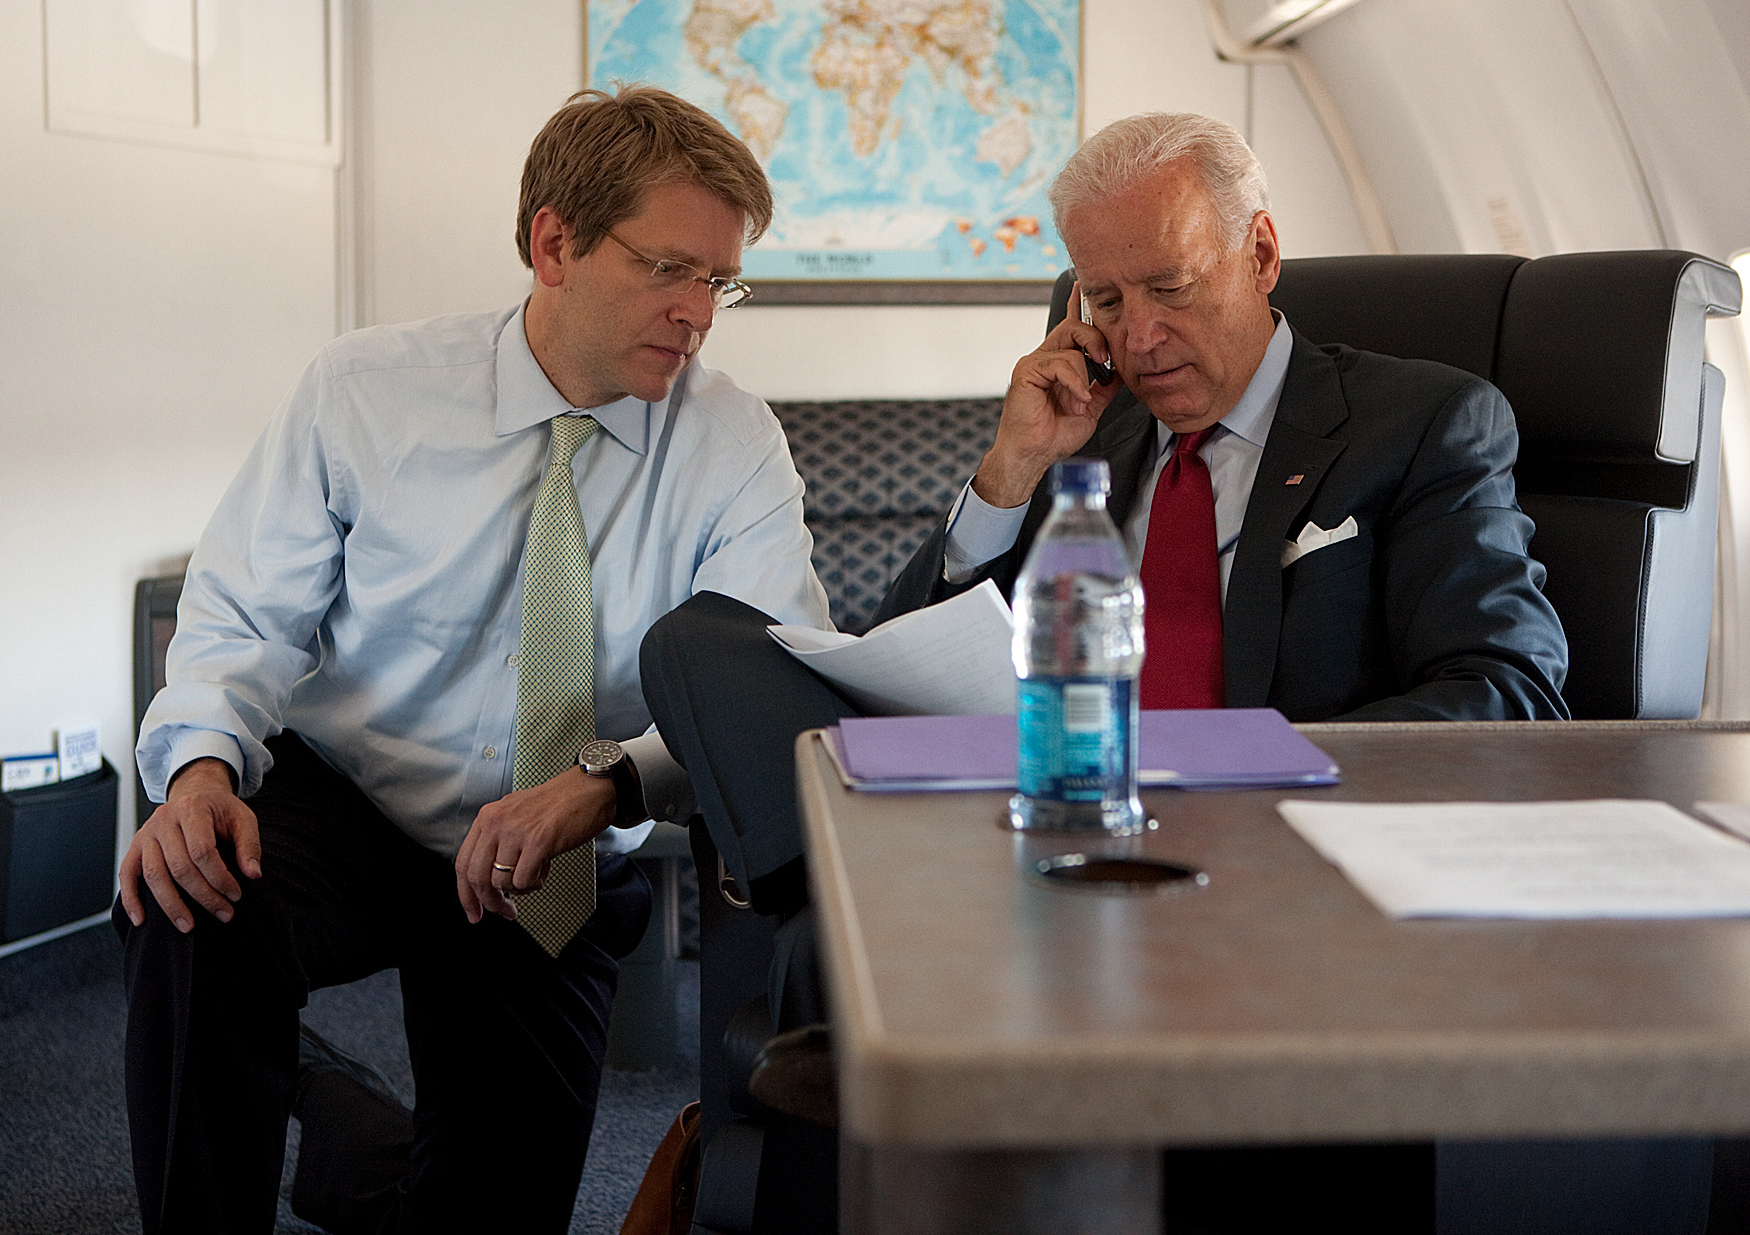 In this image released by the White House, Vice President Joe Biden works with Communications Director Jay Carney on Air Force Two en route to Atherton, Calif., July 8, 2010.